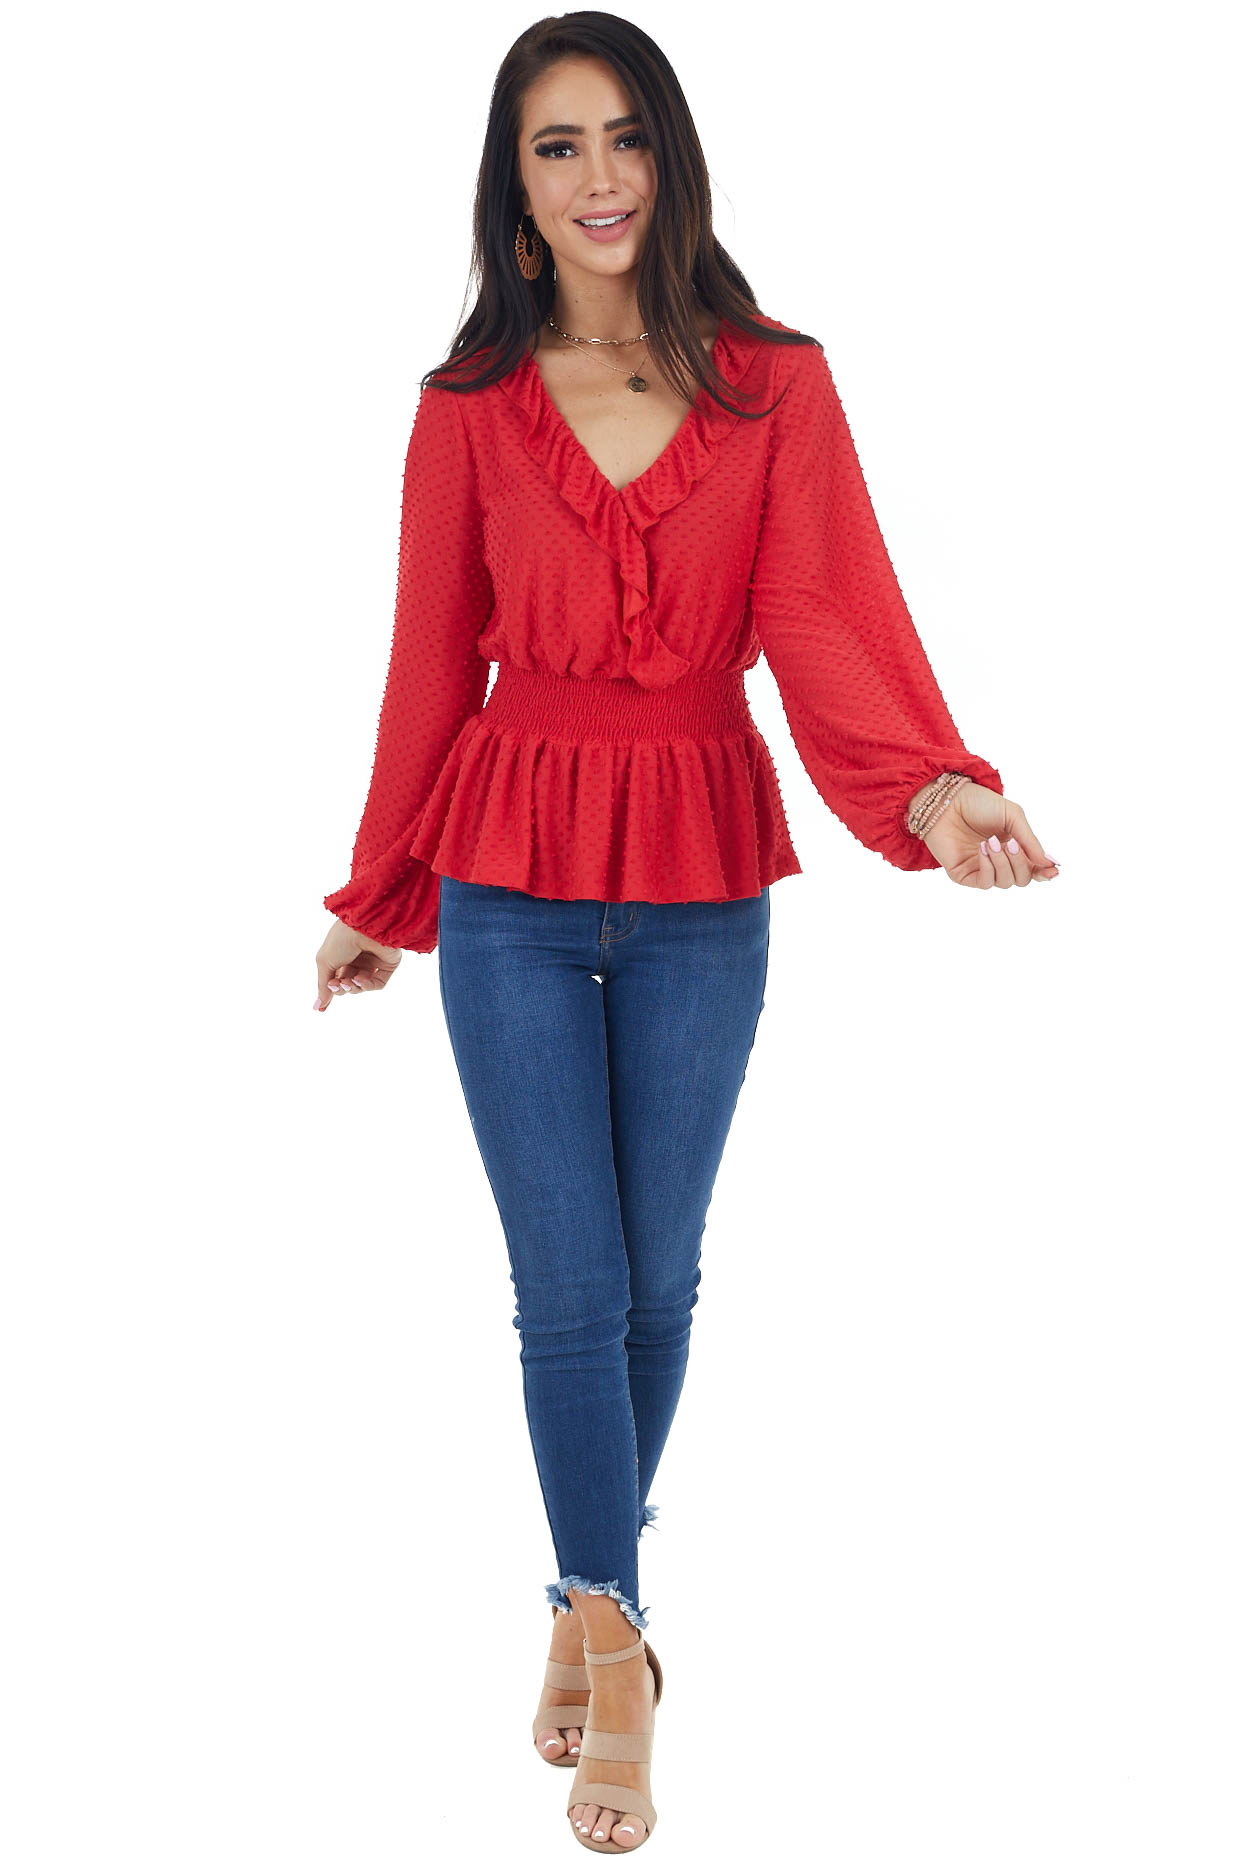 Candy Apple Red Surplice Ruffled Top with Swiss Dots